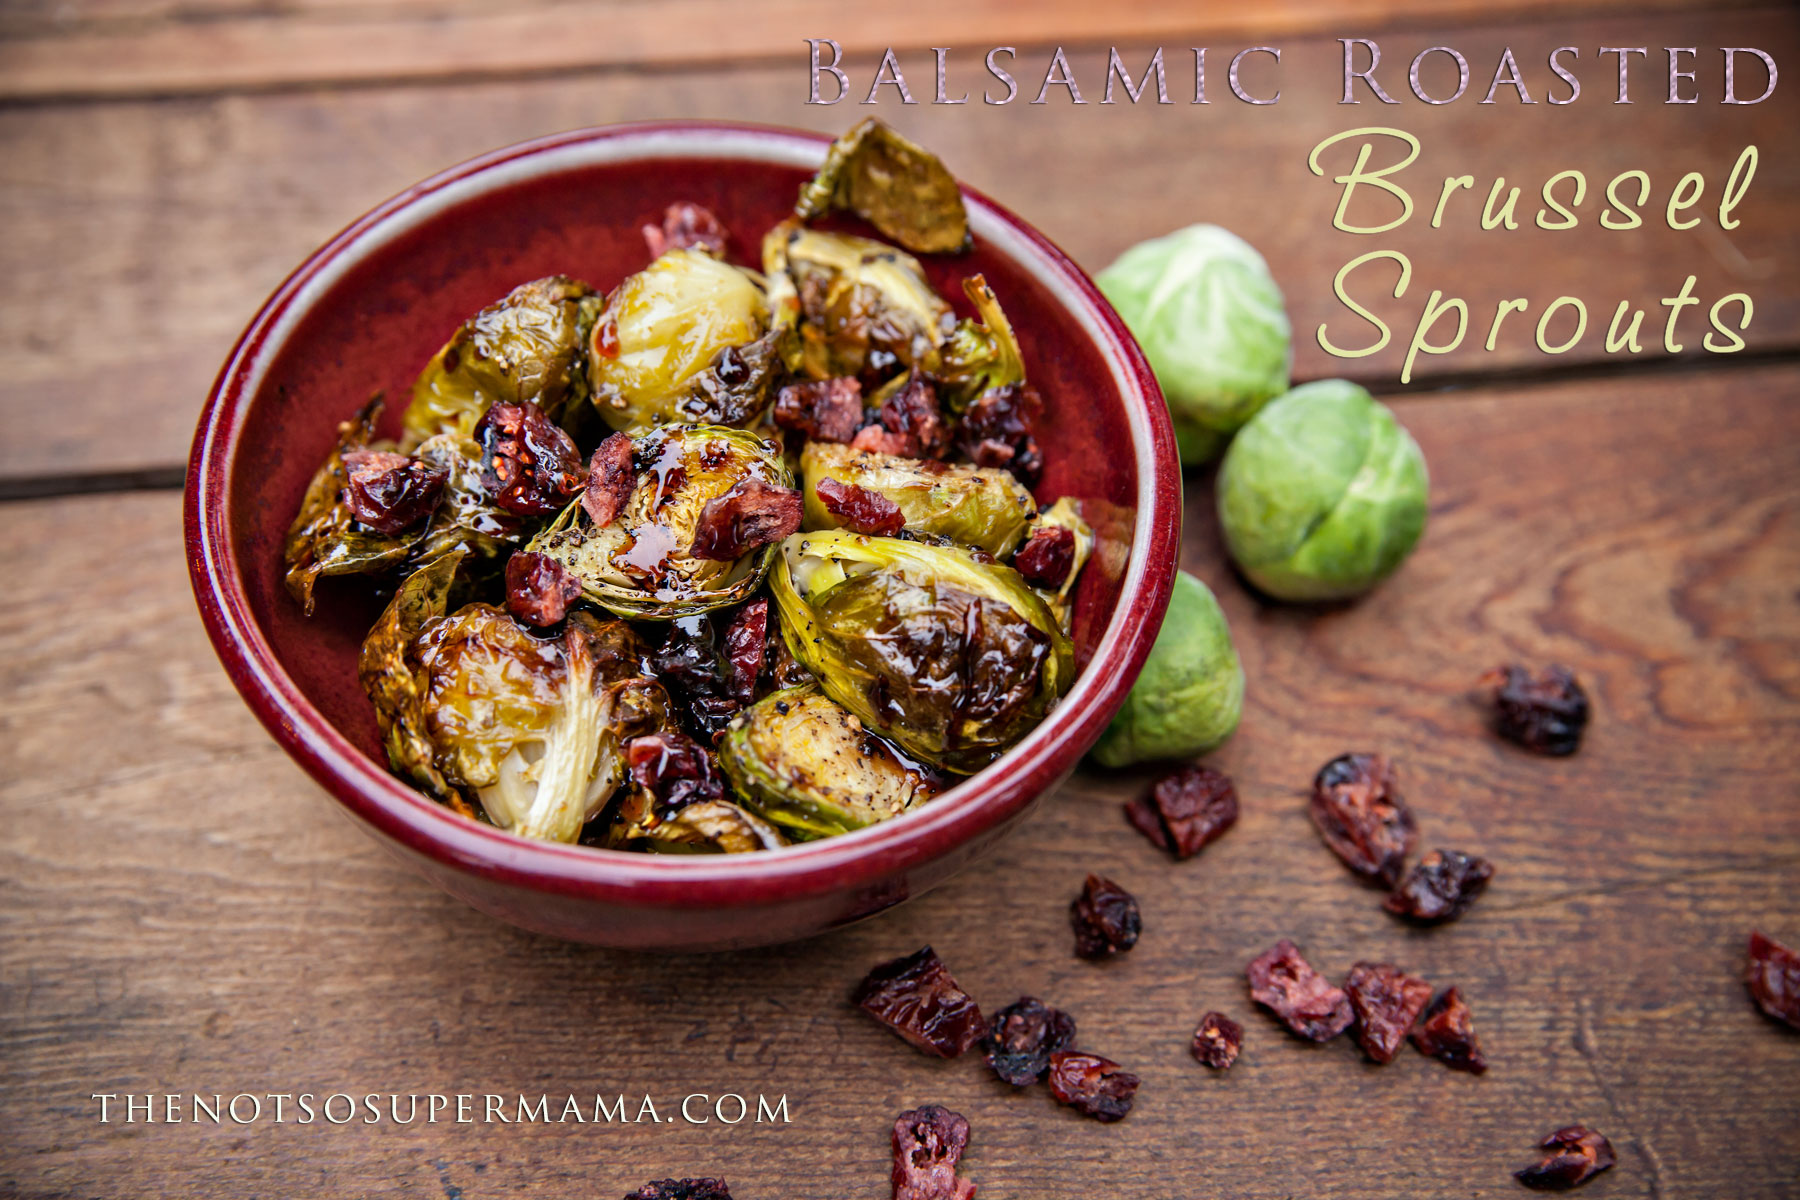 Balsamic Roasted Brussel Sprouts | The Not So Super Mama